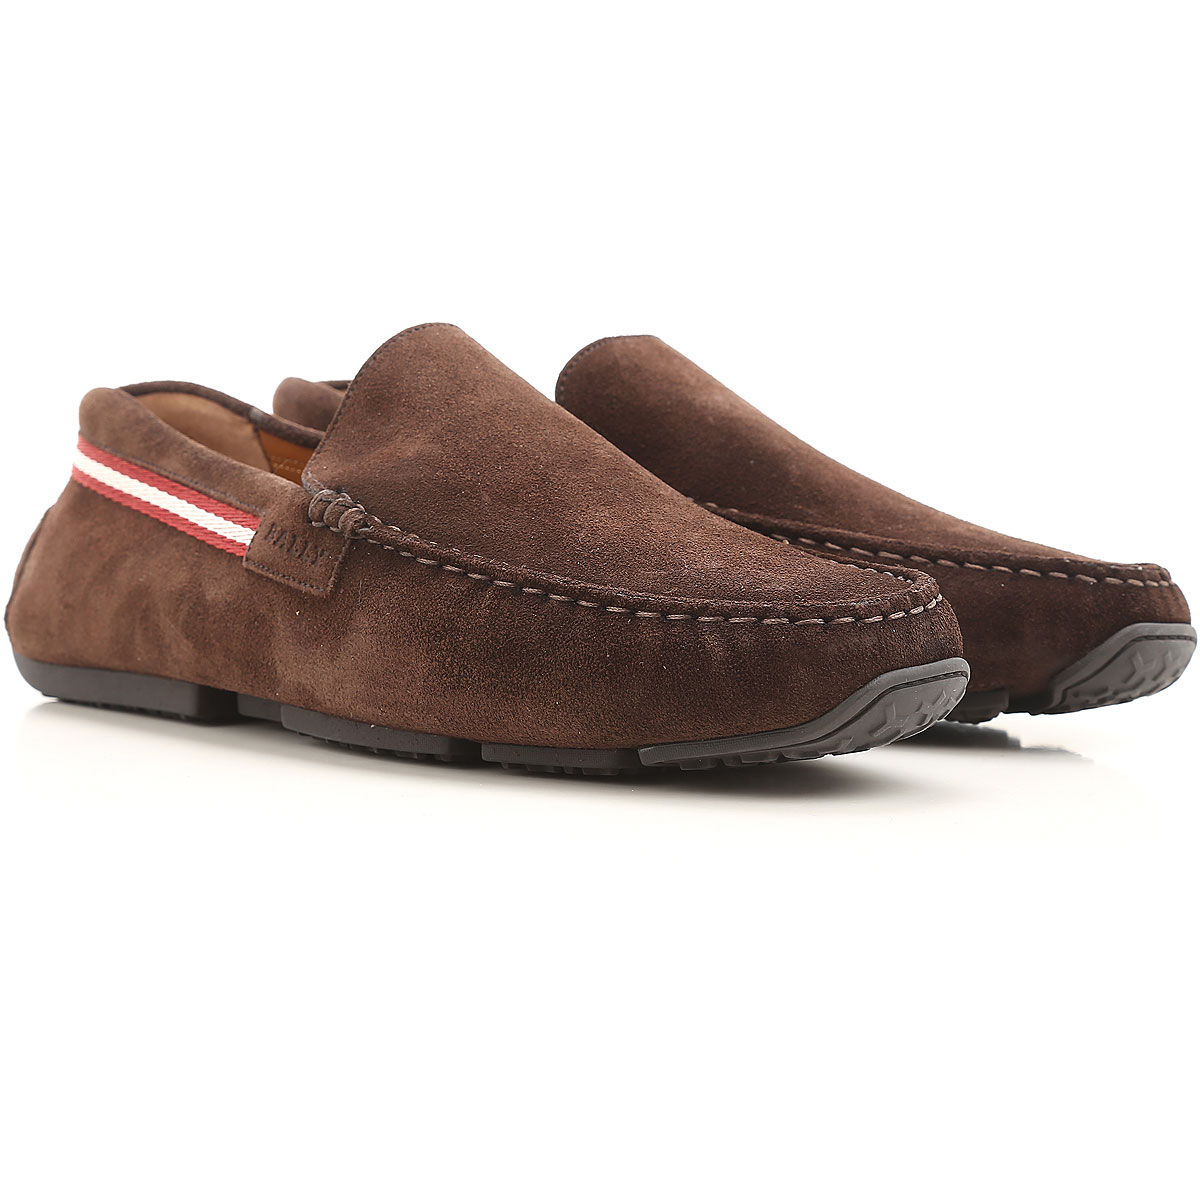 Image of Bally Driver Loafer Shoes for Men On Sale in Outlet, Coffee, Suede leather, 2017, 6 6.5 8